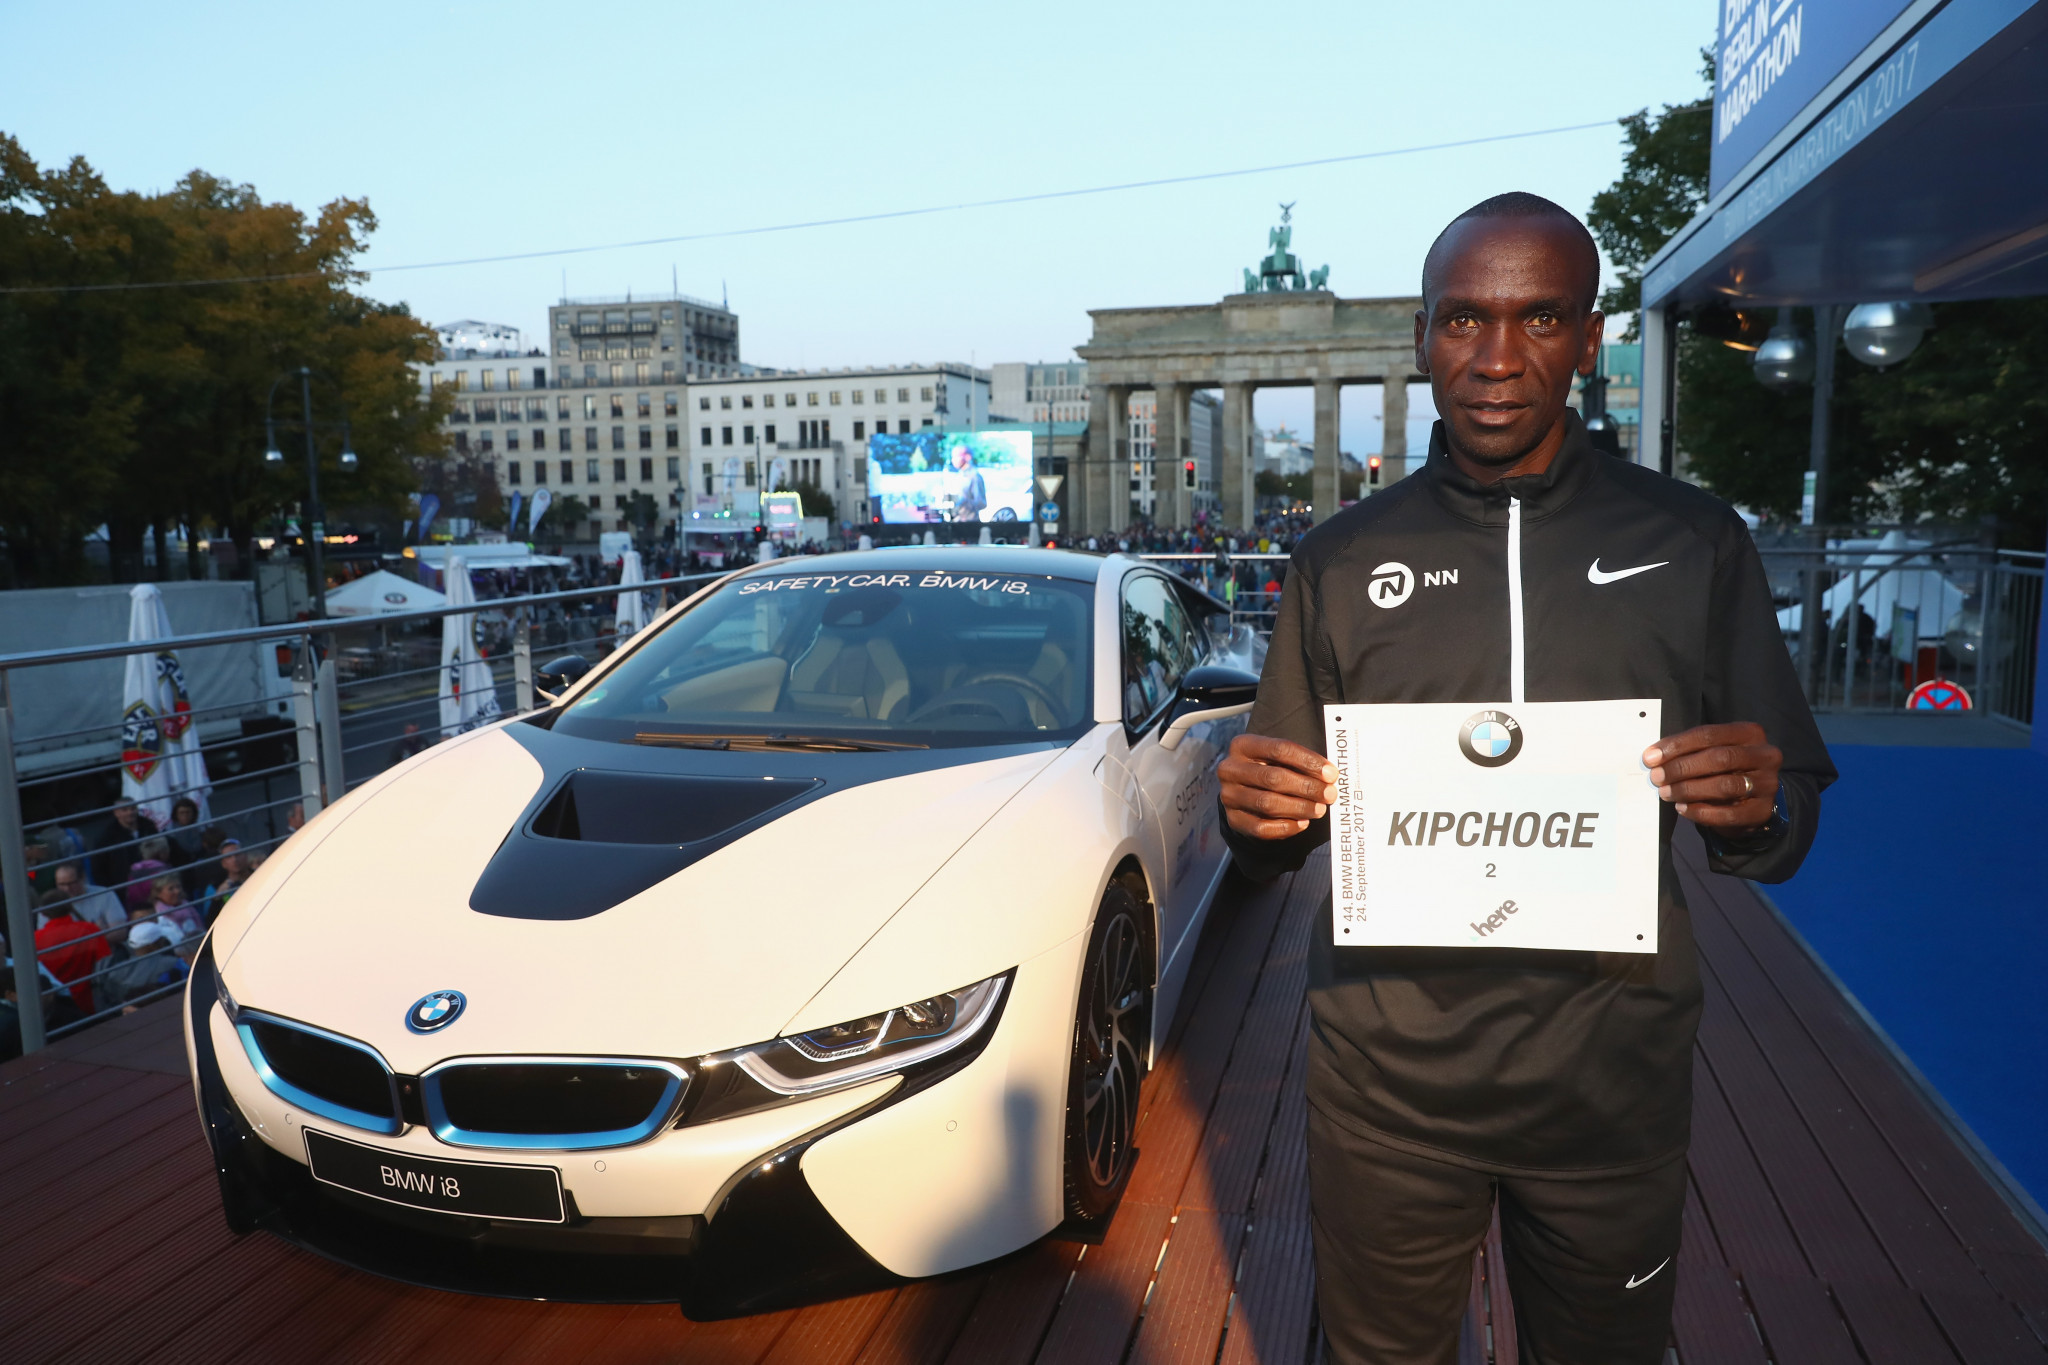 Kipchoge, Bekele and Kipsang converge for potentially epic Berlin Marathon race